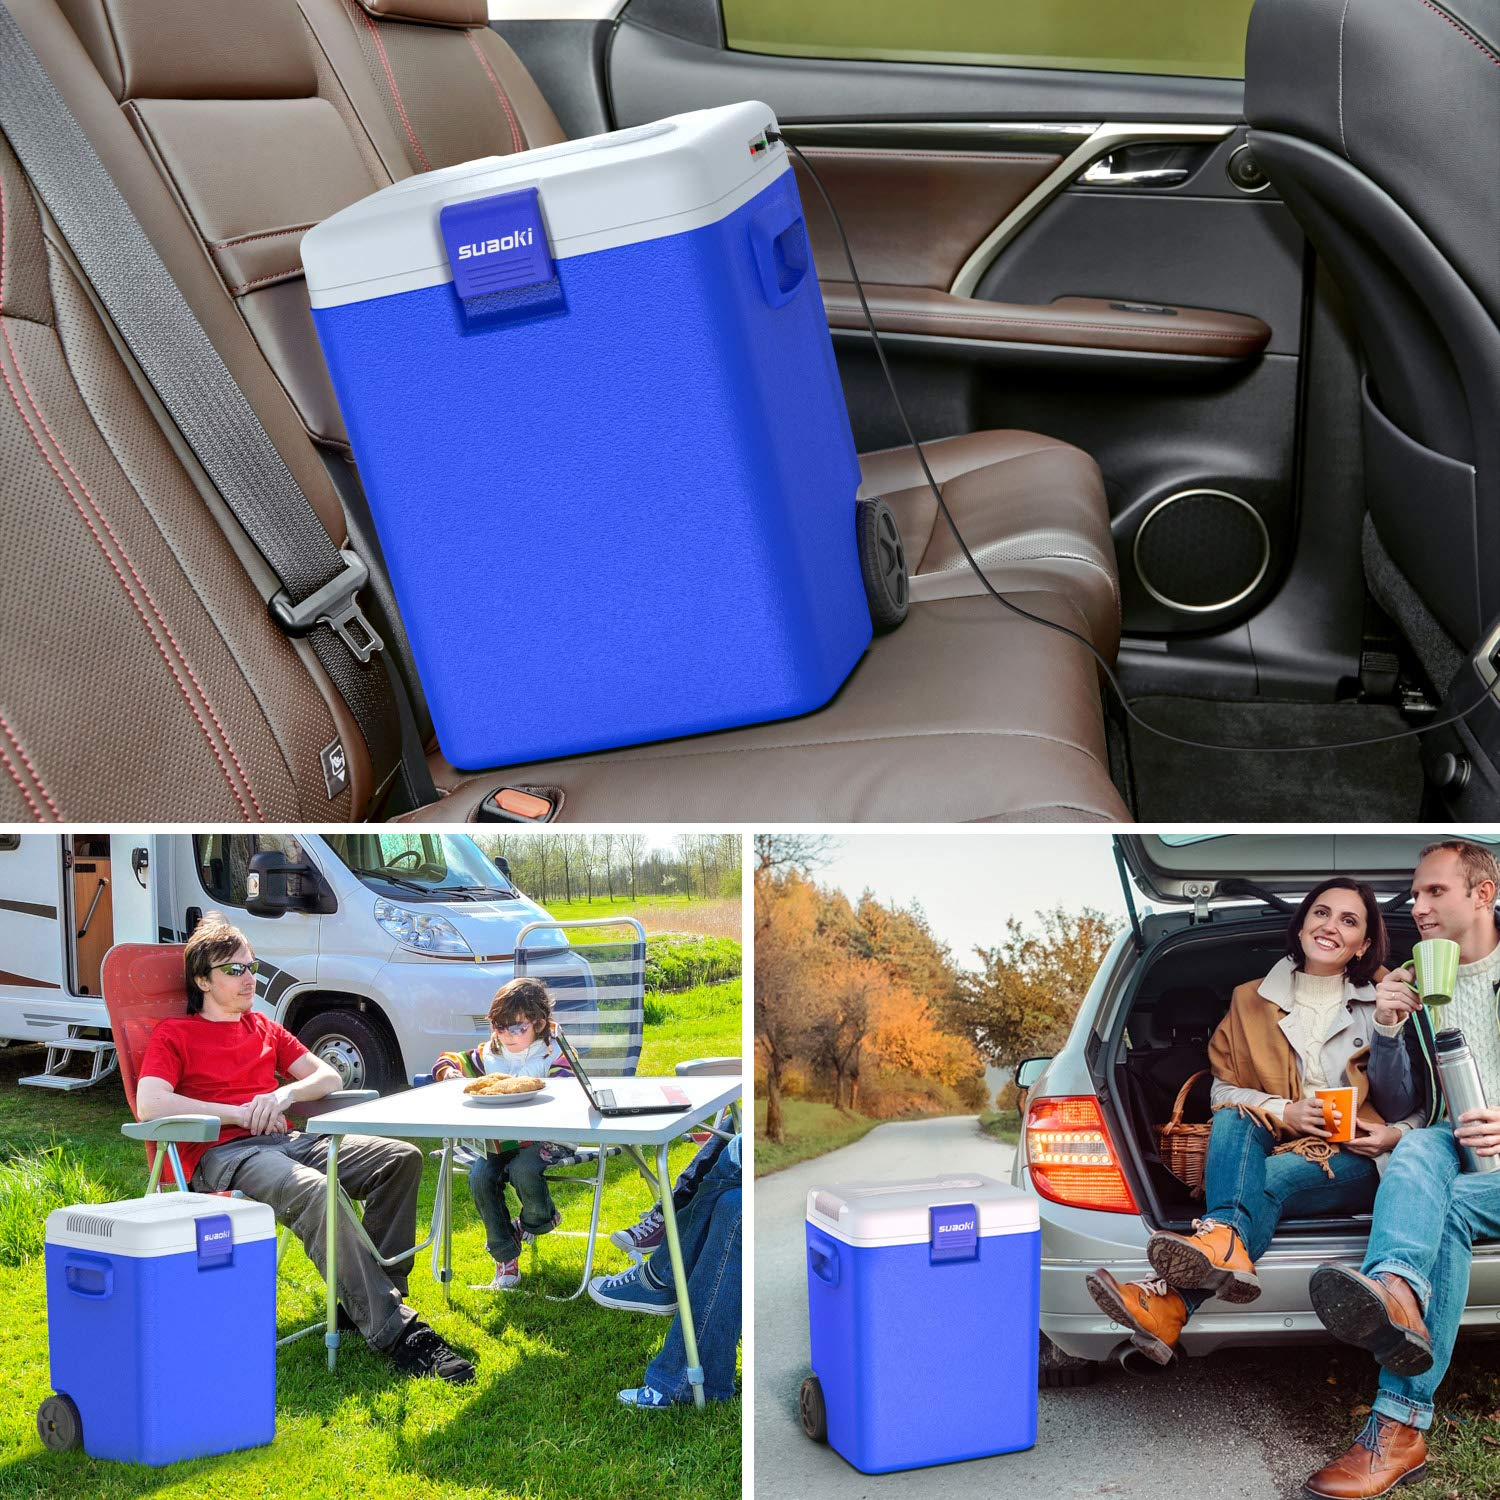 12V DC Blue SUAOKI 32 Quart //30L Portable Car Fridge Electric Freezer and Warmer Thermoelectric System with Wheels and Handle for Car Dorm Travel Camping Picnic Outdoor Party